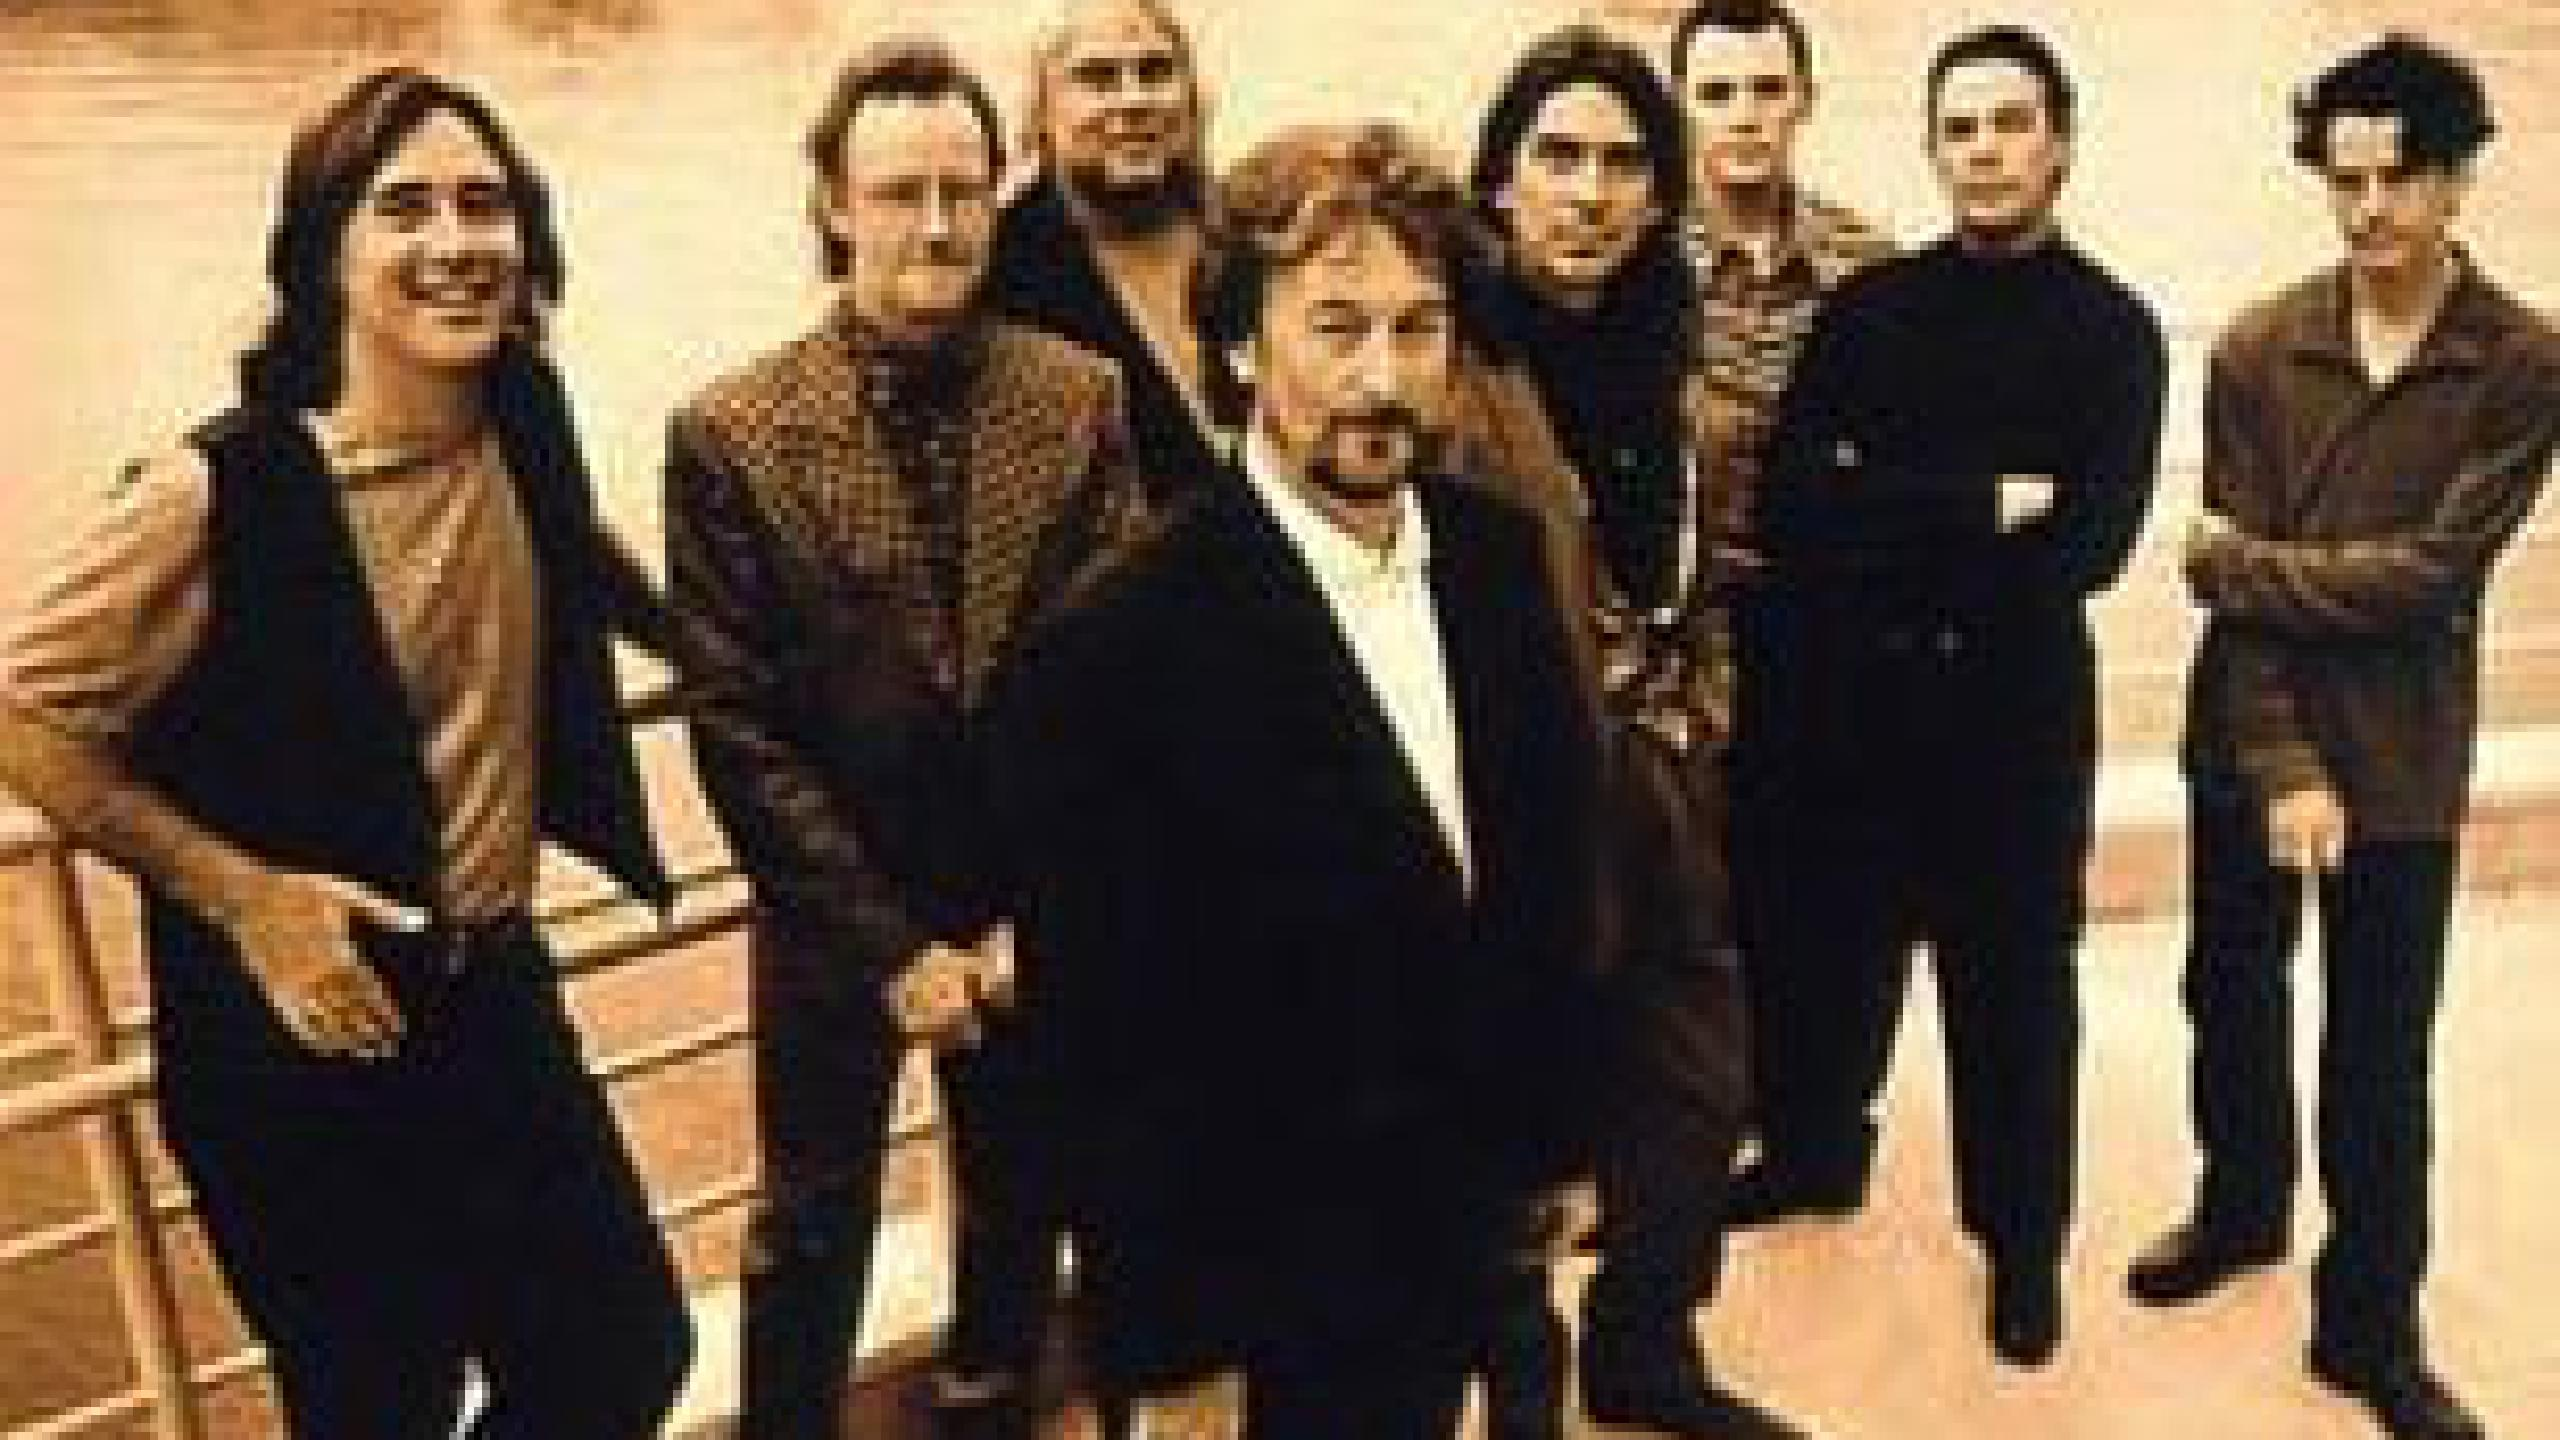 Supertramp Tour 2020 Supertramp tour dates 2019 2020. Supertramp tickets and concerts